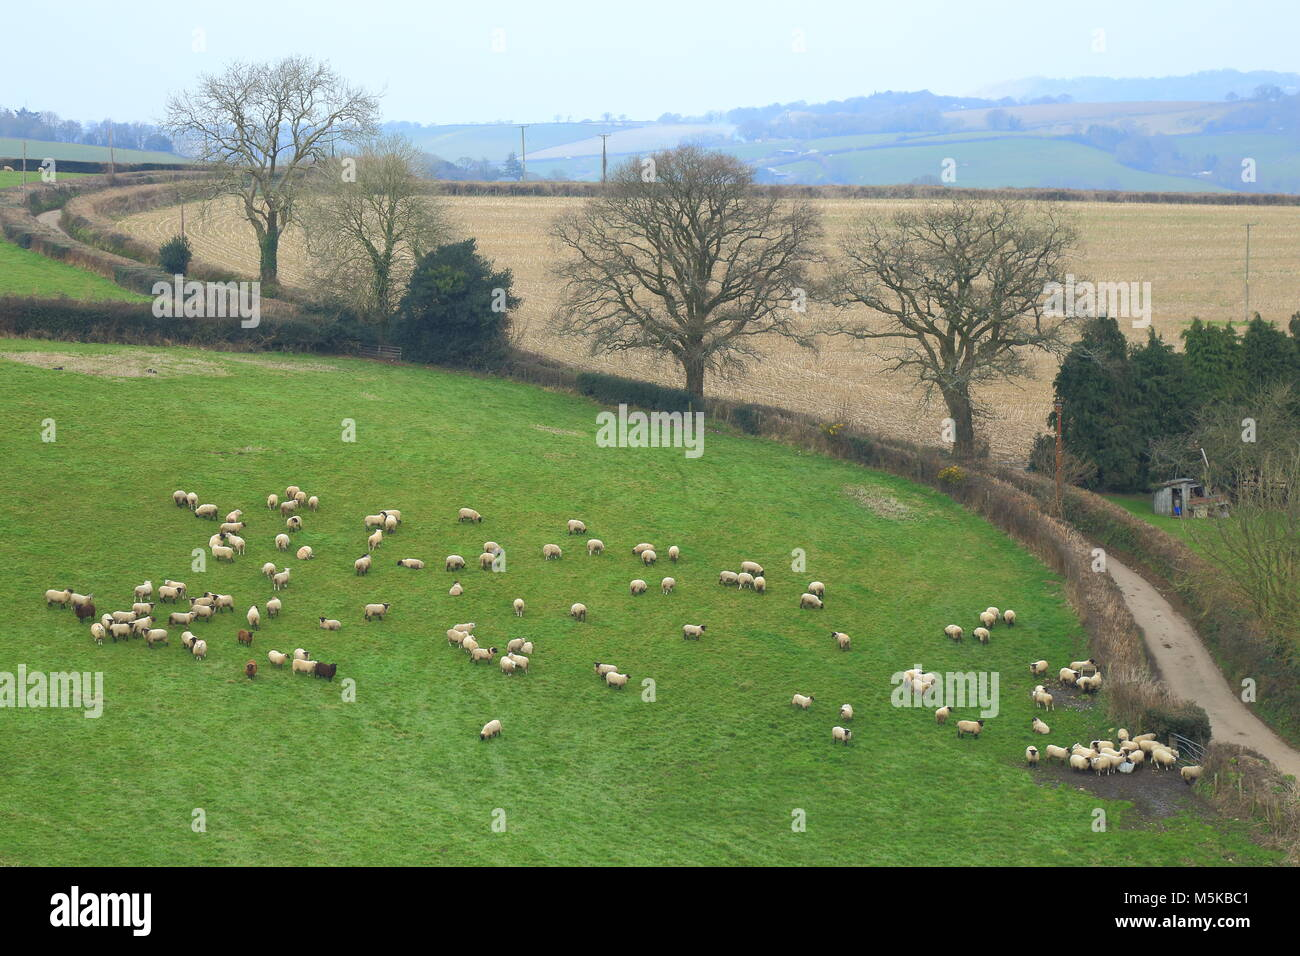 Flock of sheep graze on the farmland in East Devon Area of Outstanding Natural Beauty - Stock Image